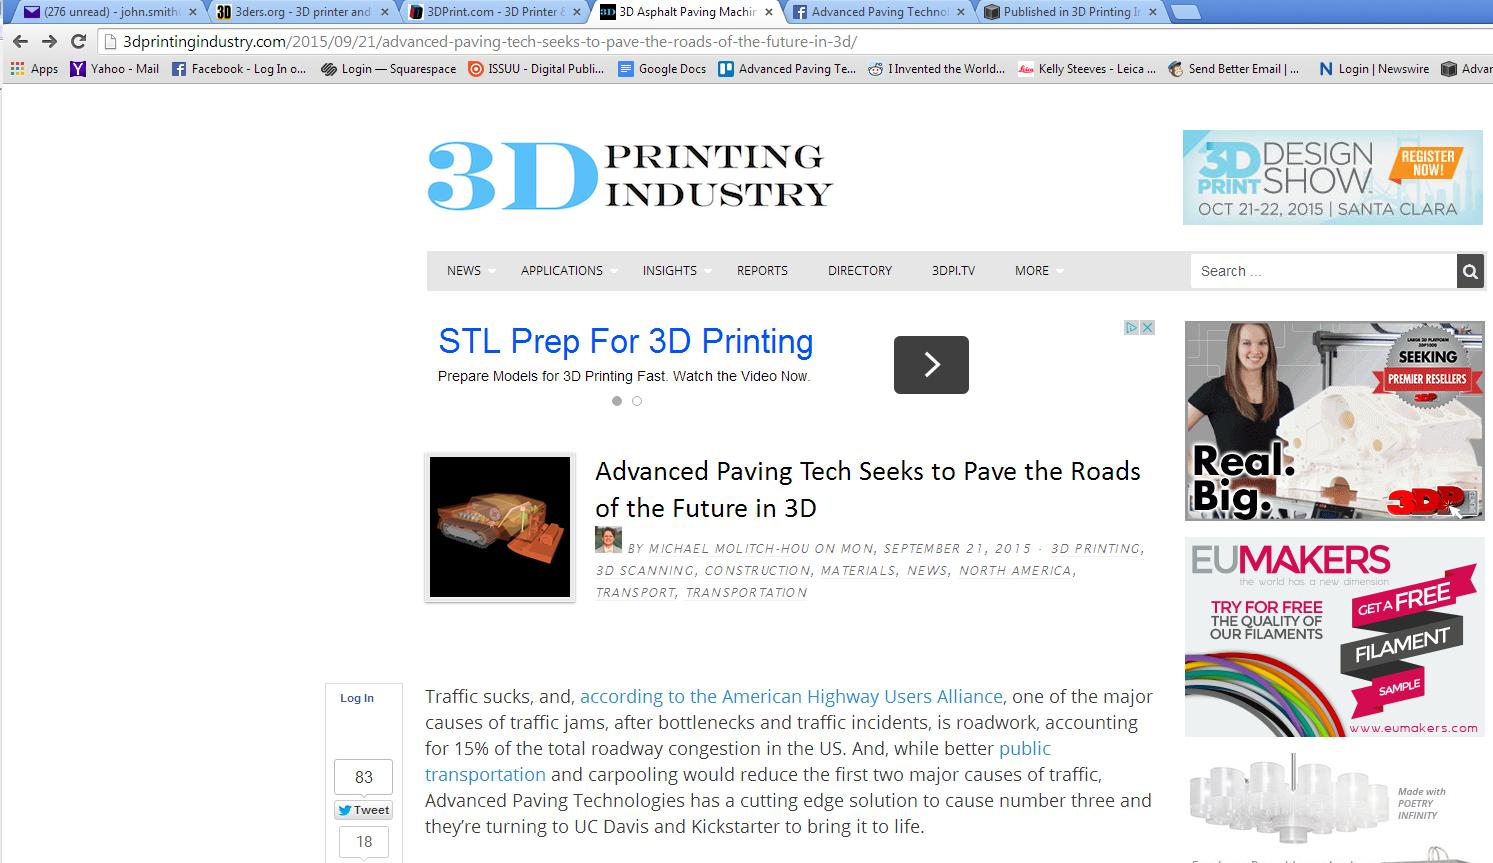 Published in 3D Printing Industry — Advanced Paving Technologies